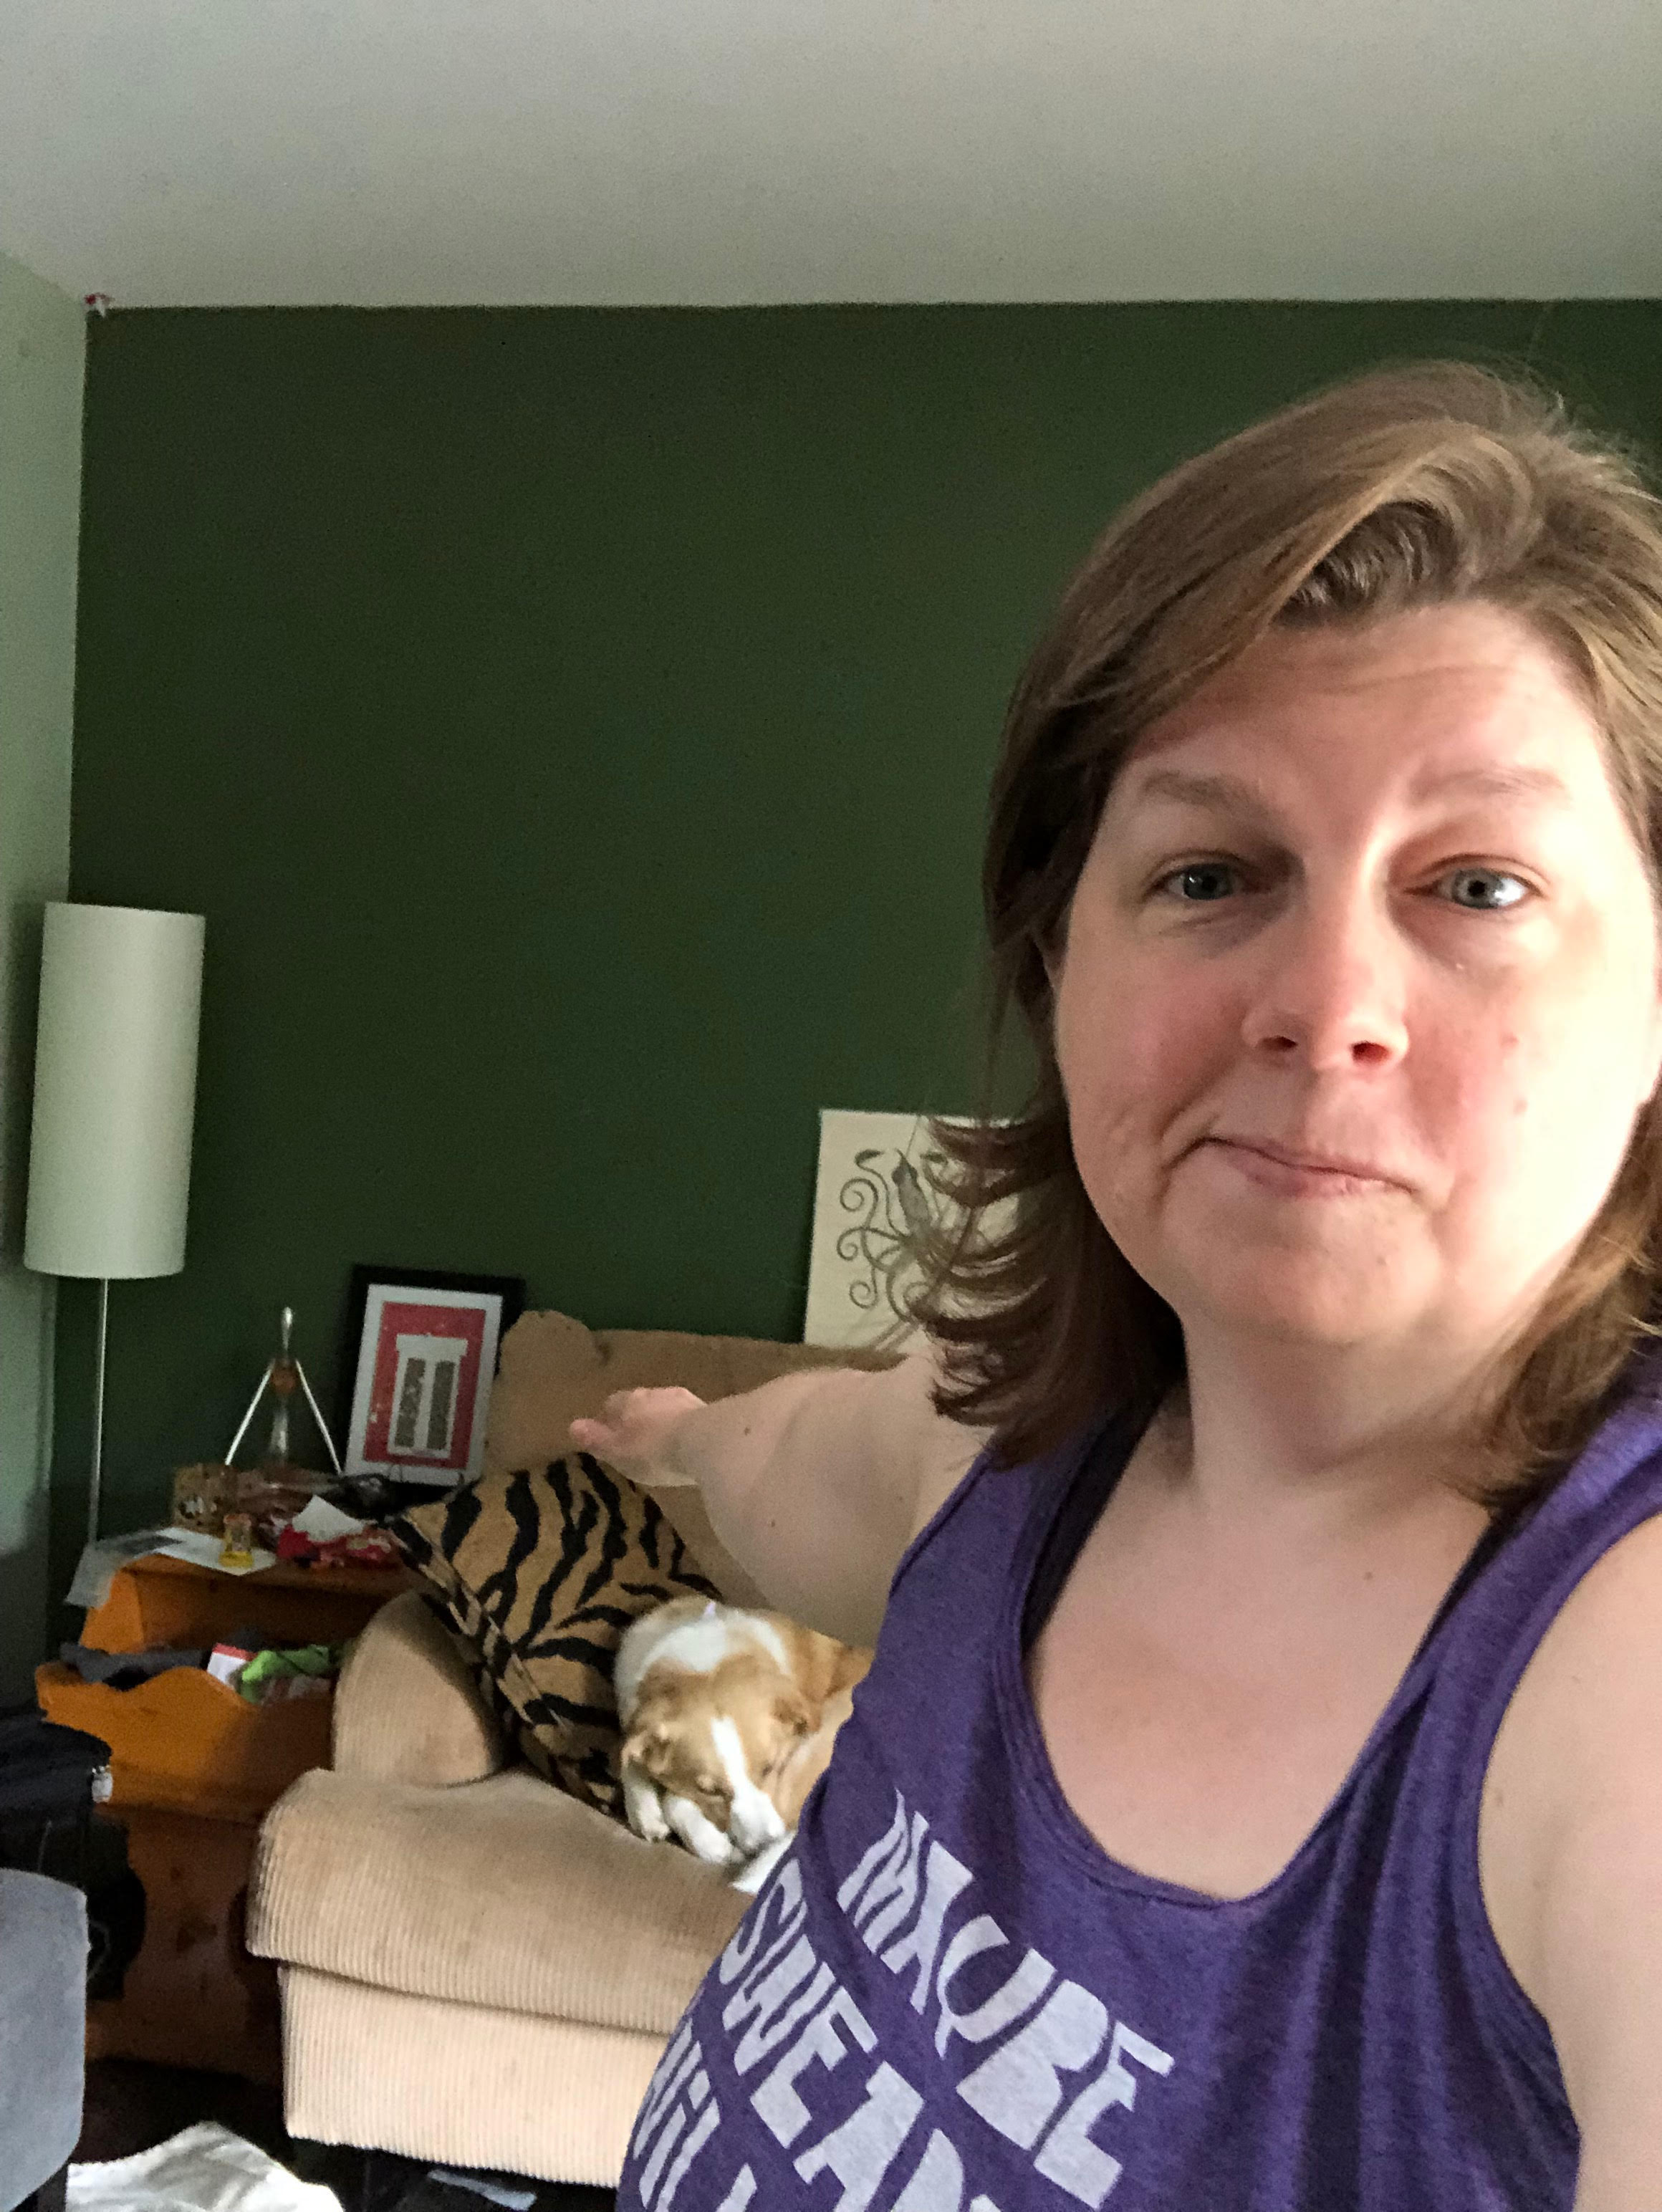 A middle aged white woman with shoulder-length light brown hair, wearing a purple tank top, smirks at the camera, behind her is a green wall, a beige couch and an endtable with knickknacks on it, there is a light brown dog asleep on the couch,  The woman's right hand is extended back away from the camera, in the position for Warrior II in yoga.